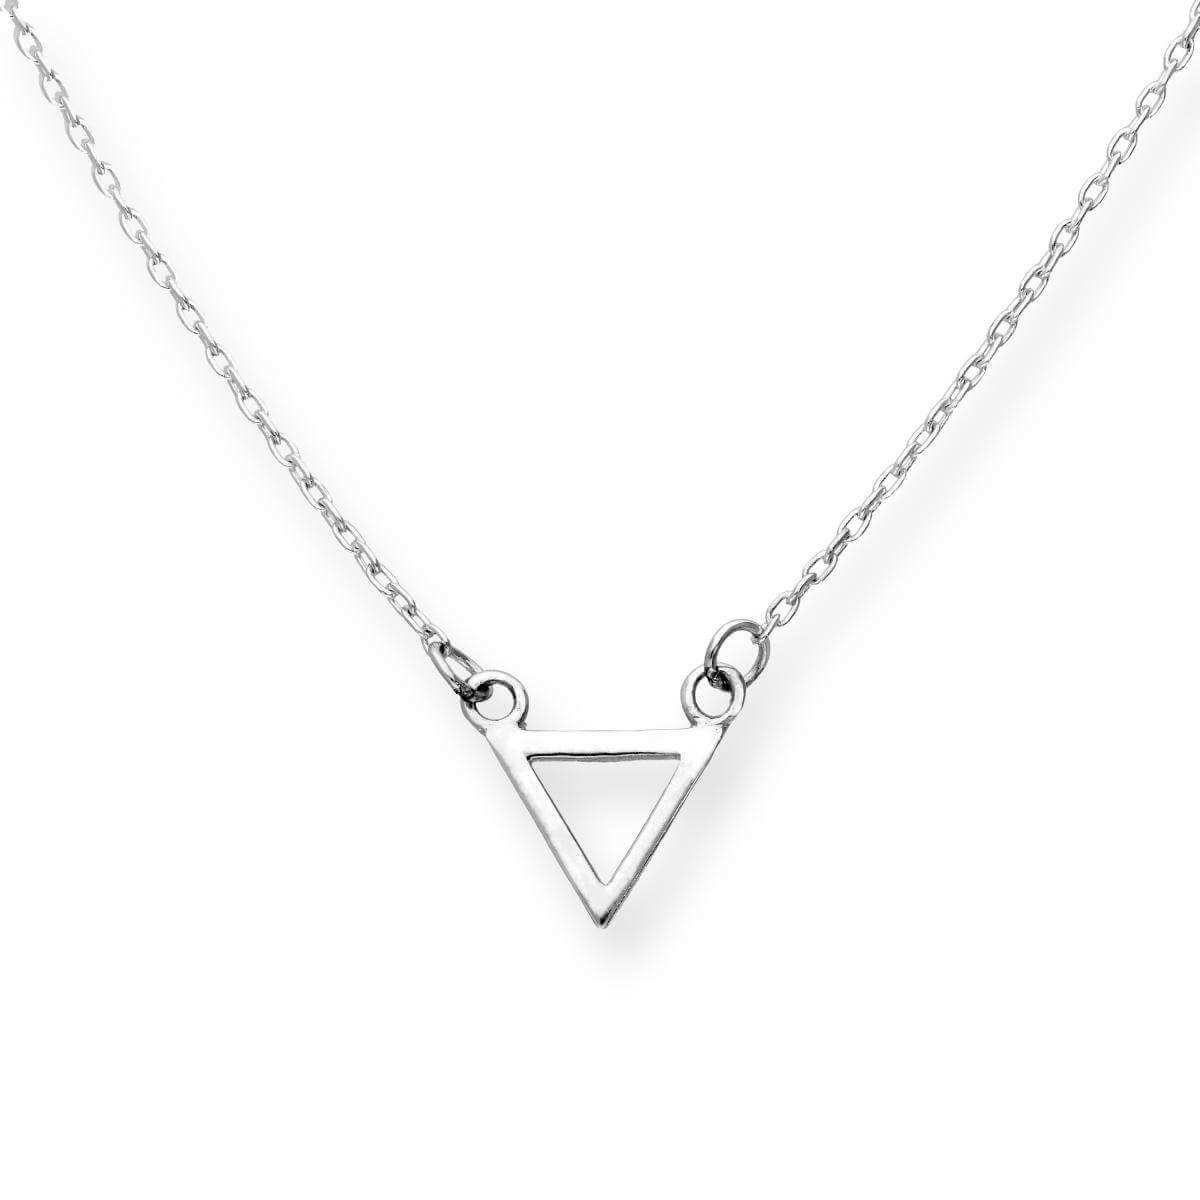 Sterling Silver Triangle 18 Inch Necklace